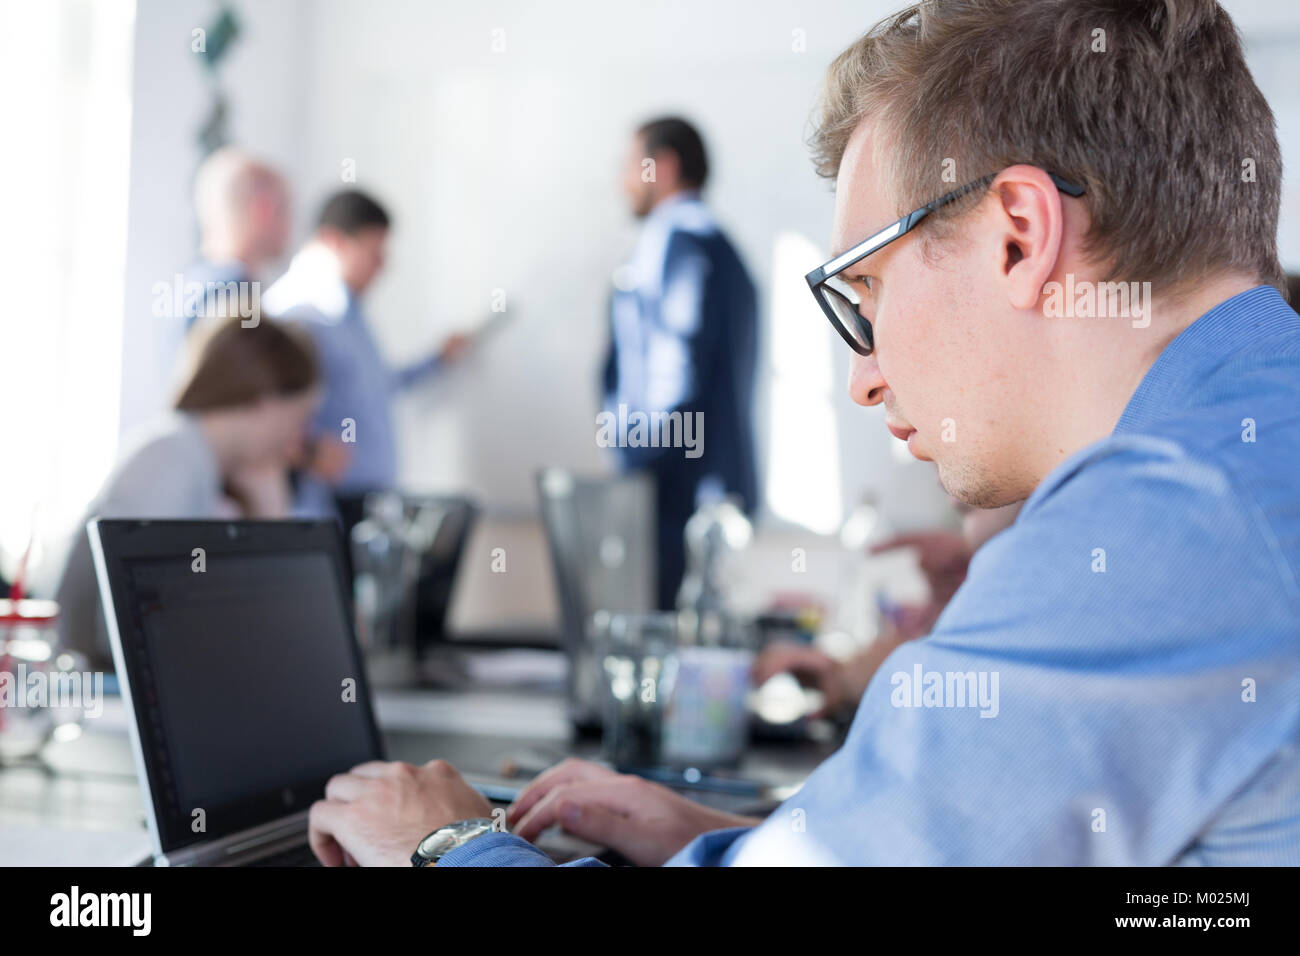 Relaxed informal IT business startup company team meeting. - Stock Image